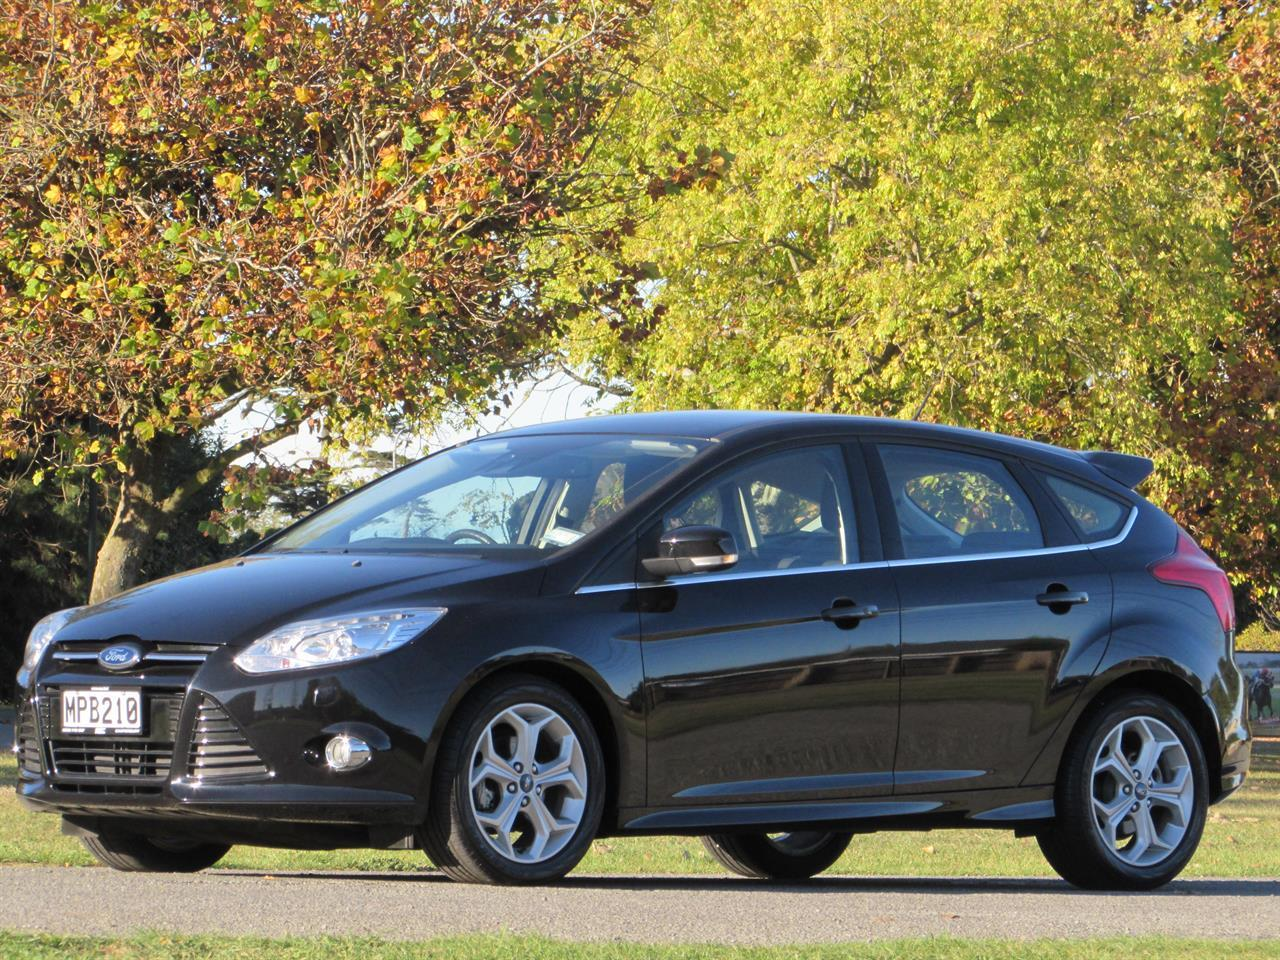 image-2, 2013 Ford Focus at Christchurch